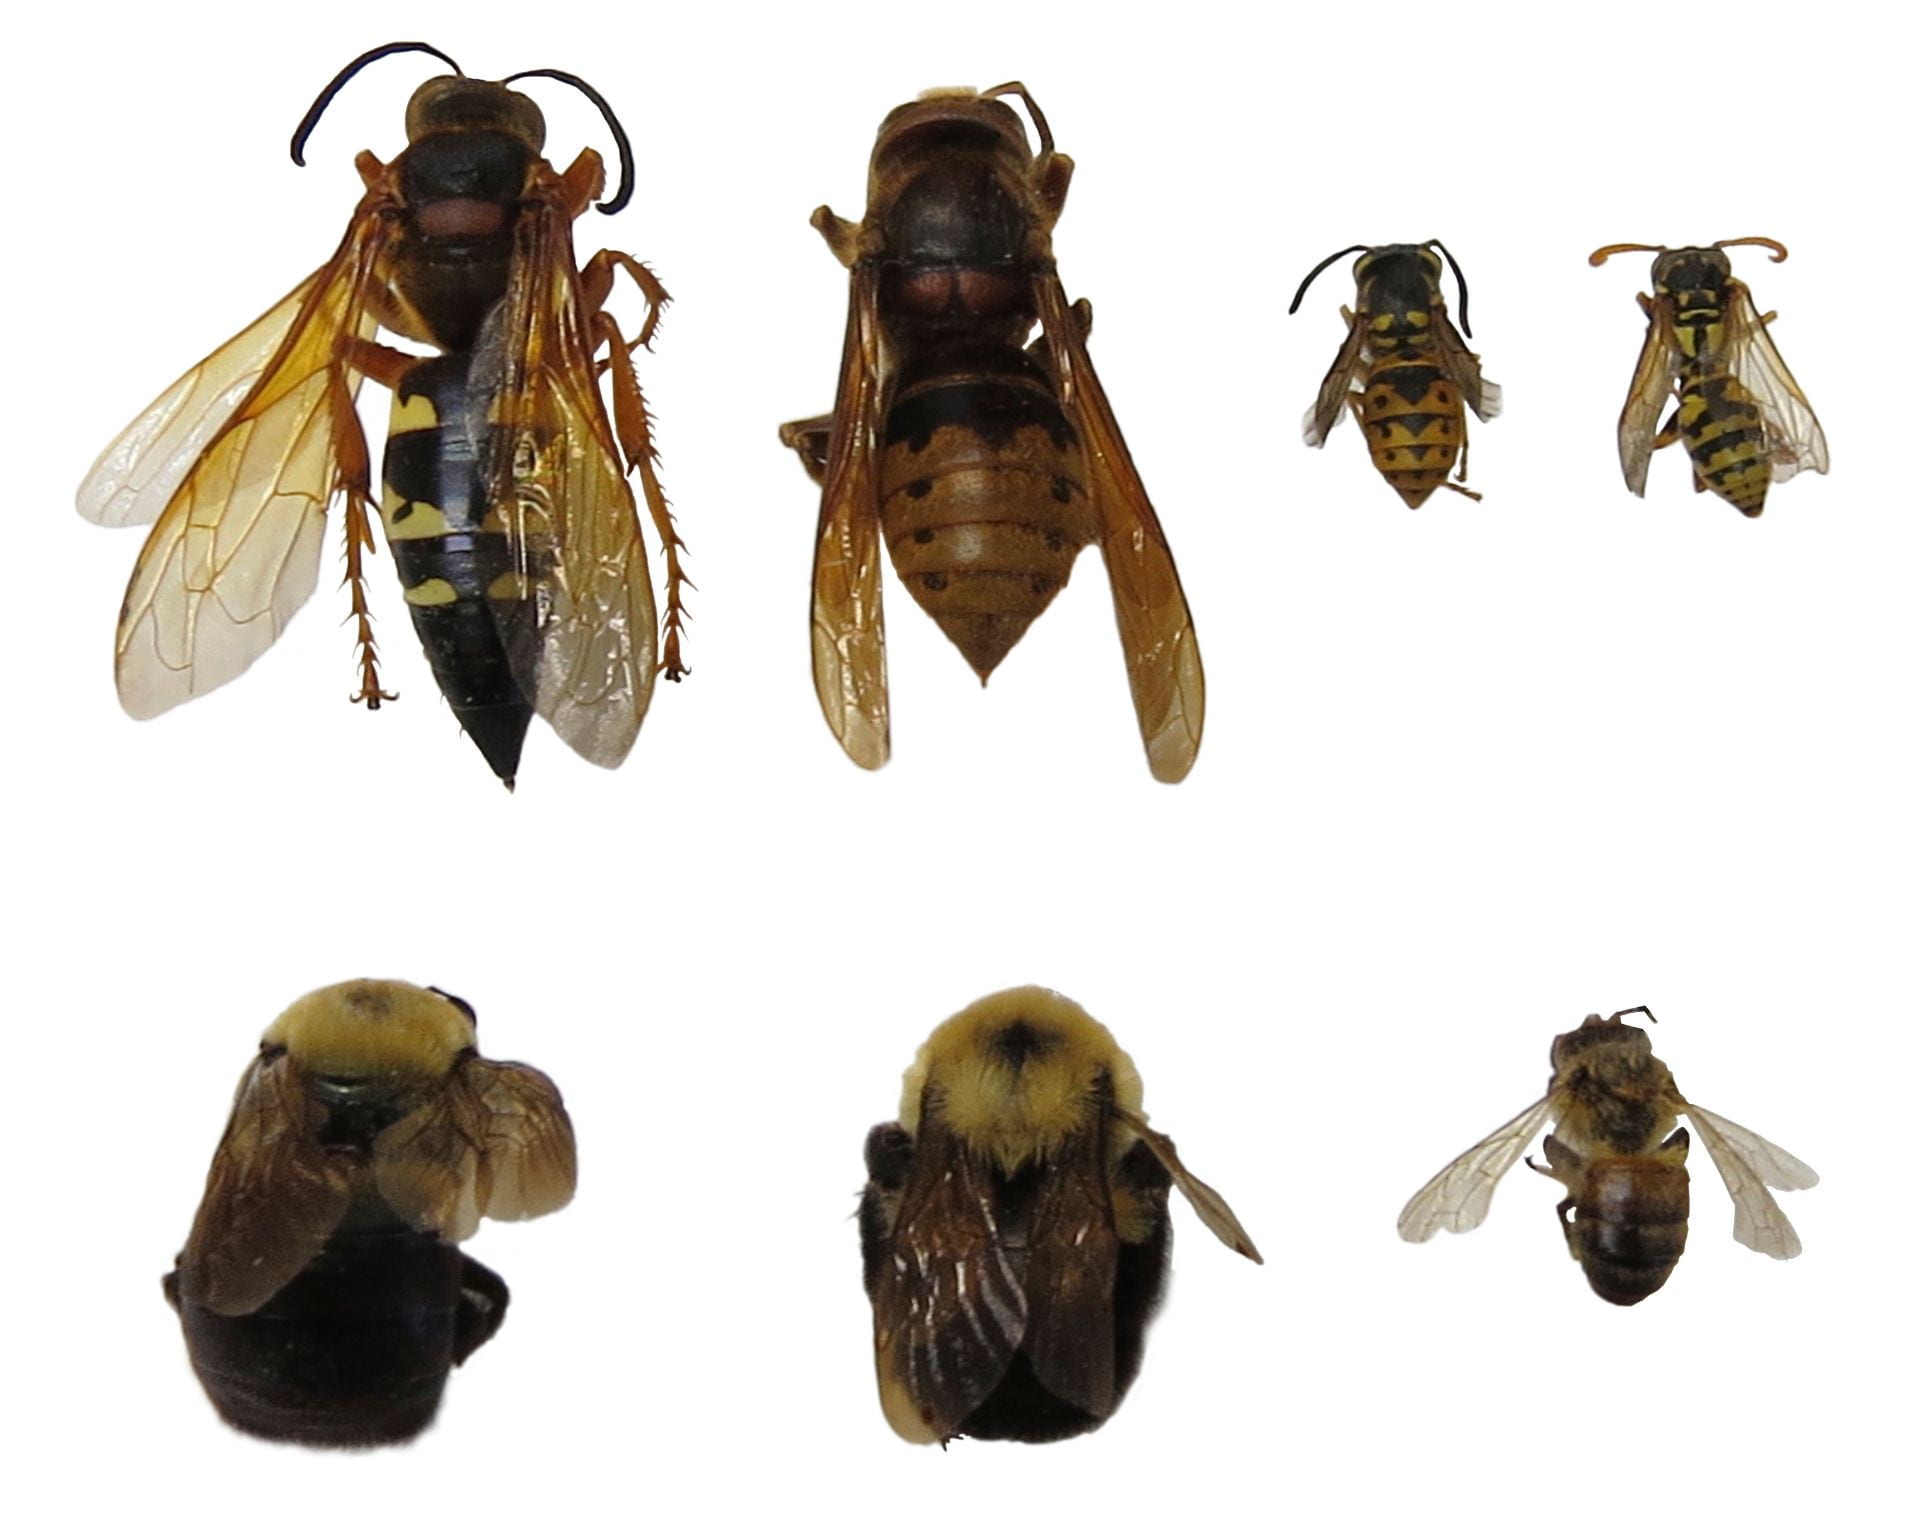 photo showing multiple types of hornets, wasps and bees for size comparison.